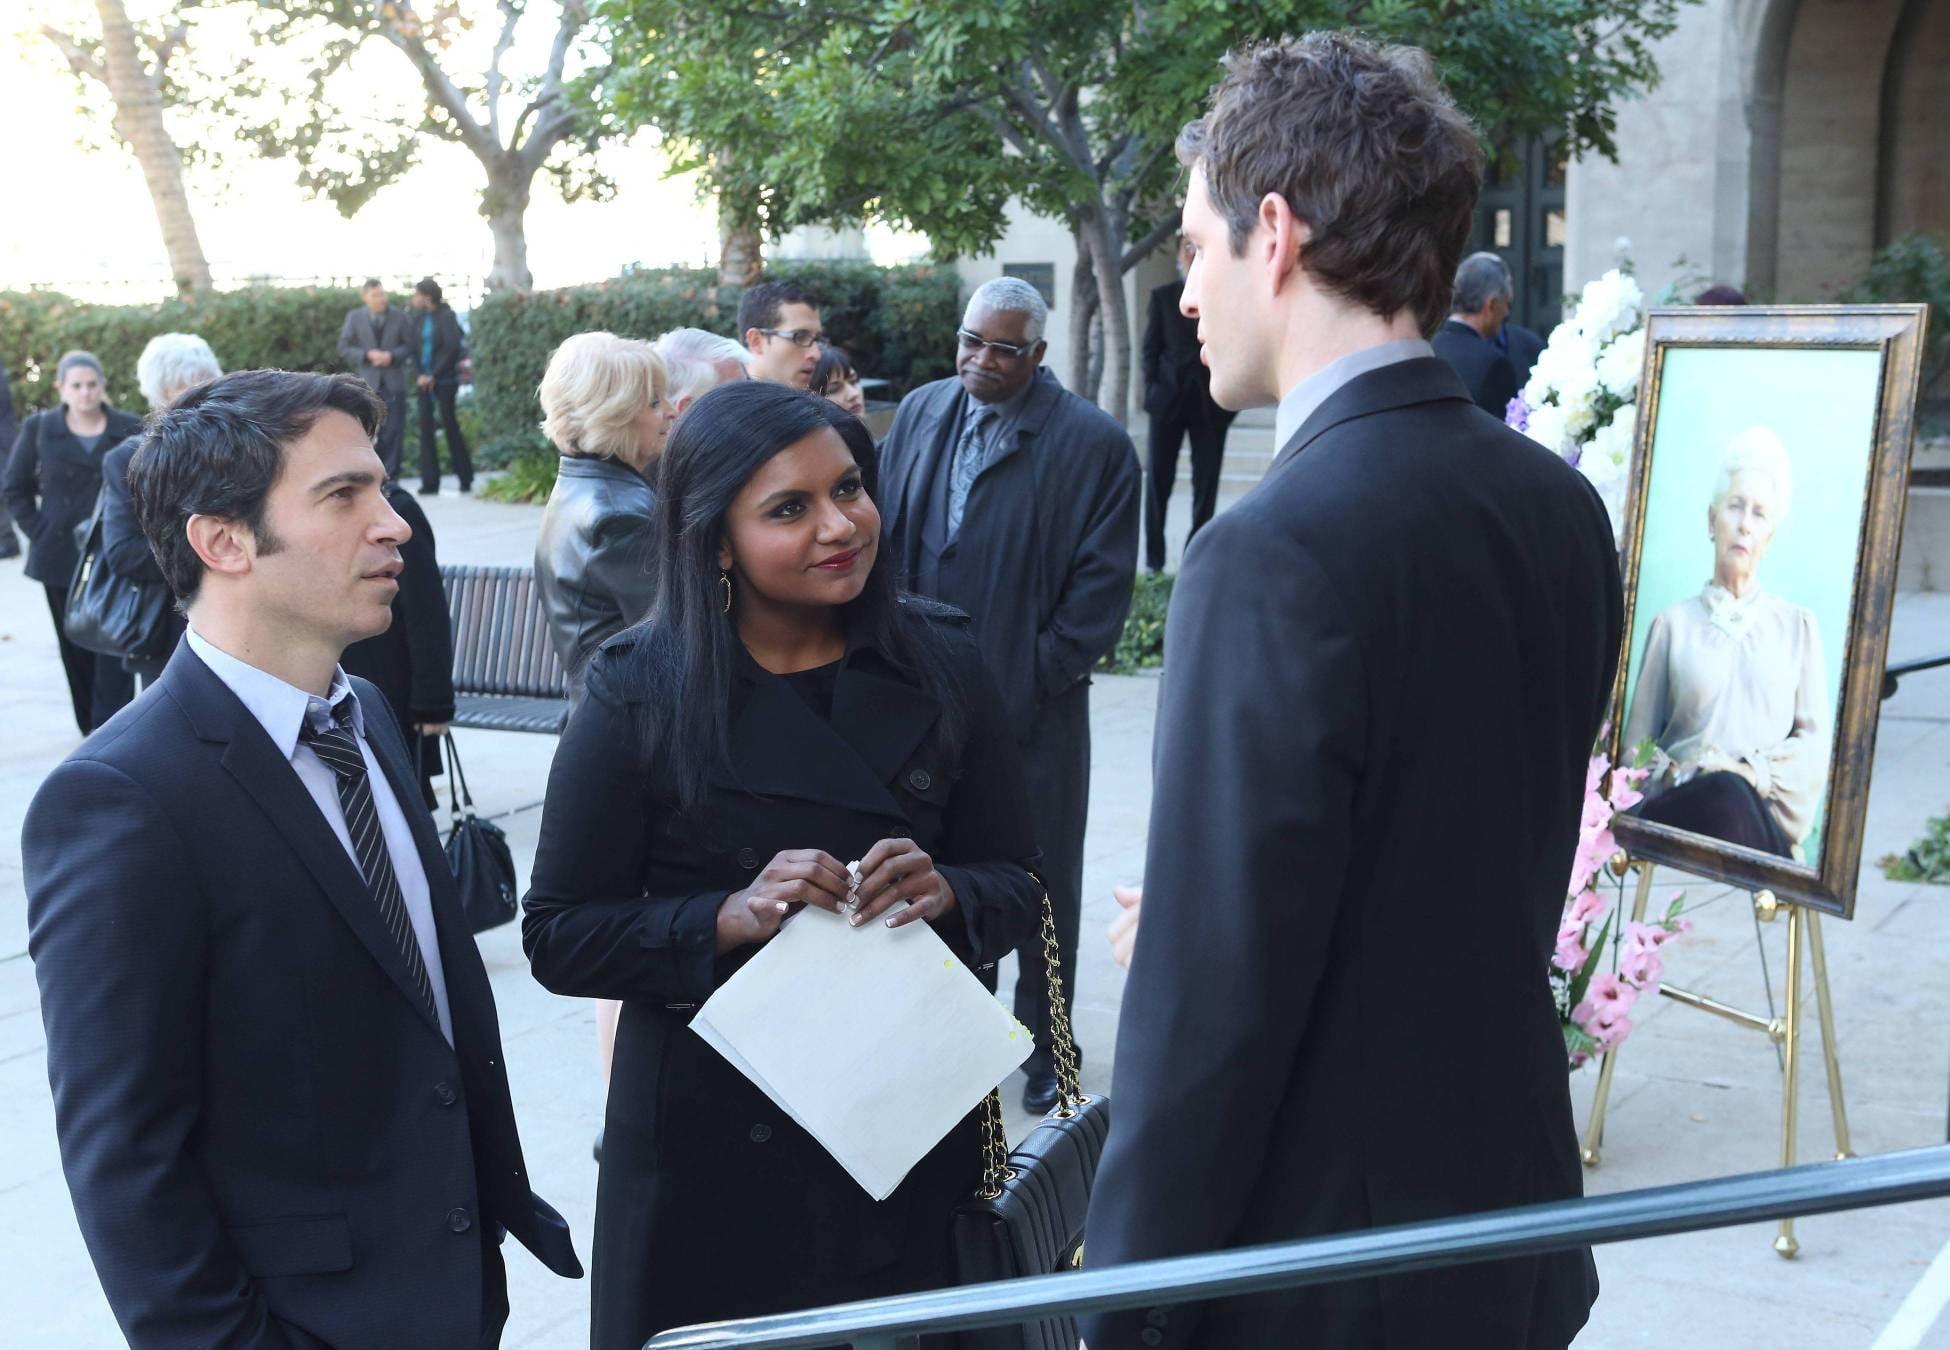 Danny (Chris Messina) and Mindy (Mindy Kaling) attend Cliff's (Glenn Howerton) grandmother's funeral.